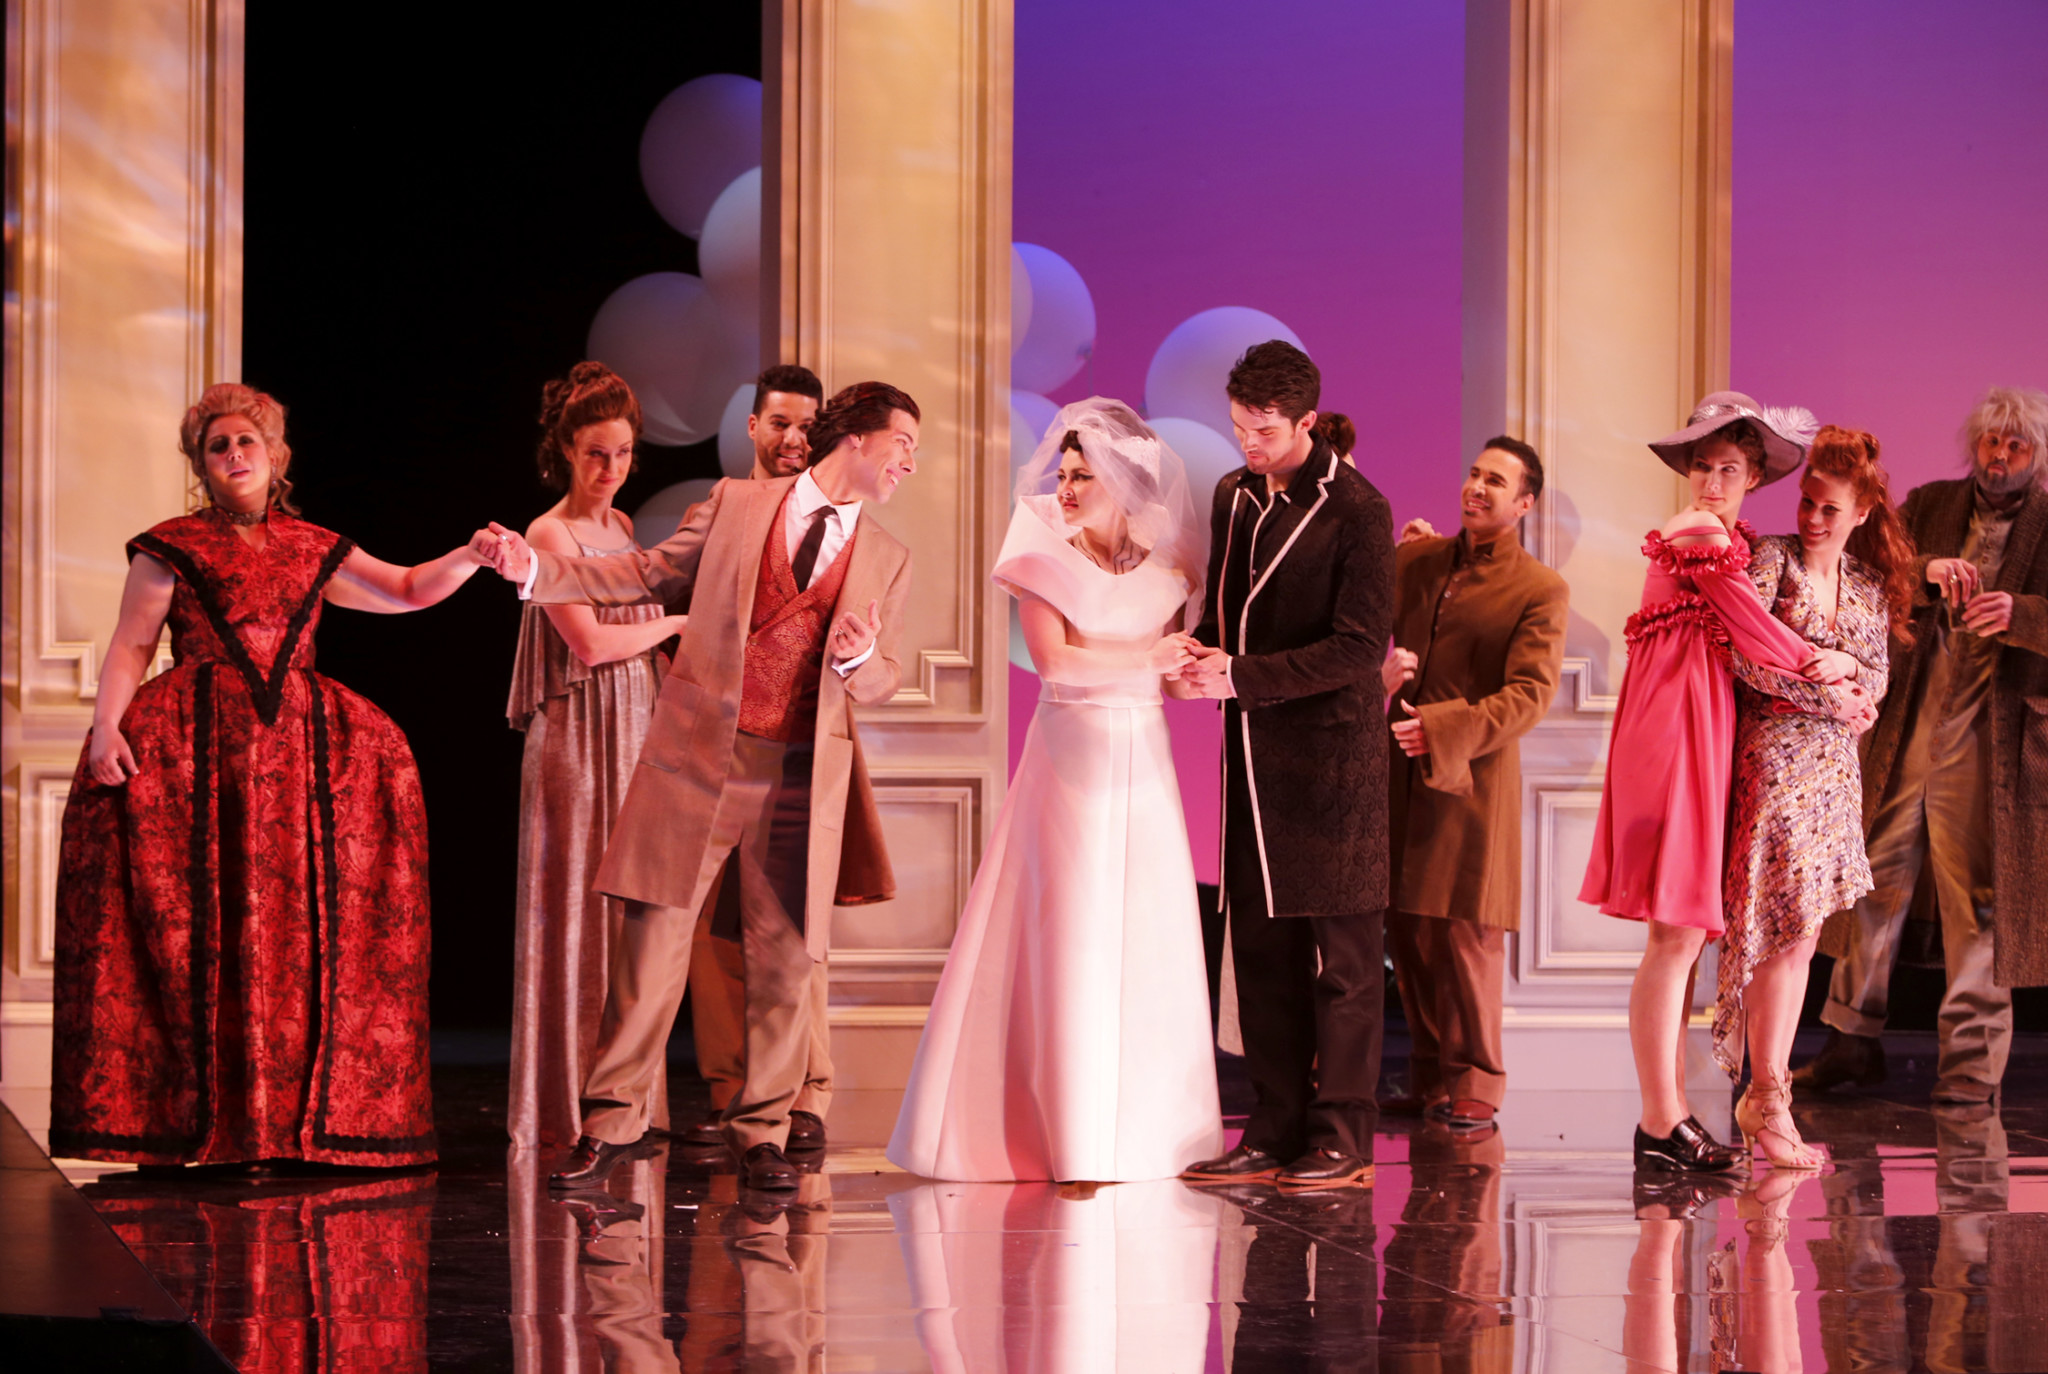 Marriage of Figaro Dazzles with Sparkling Performances